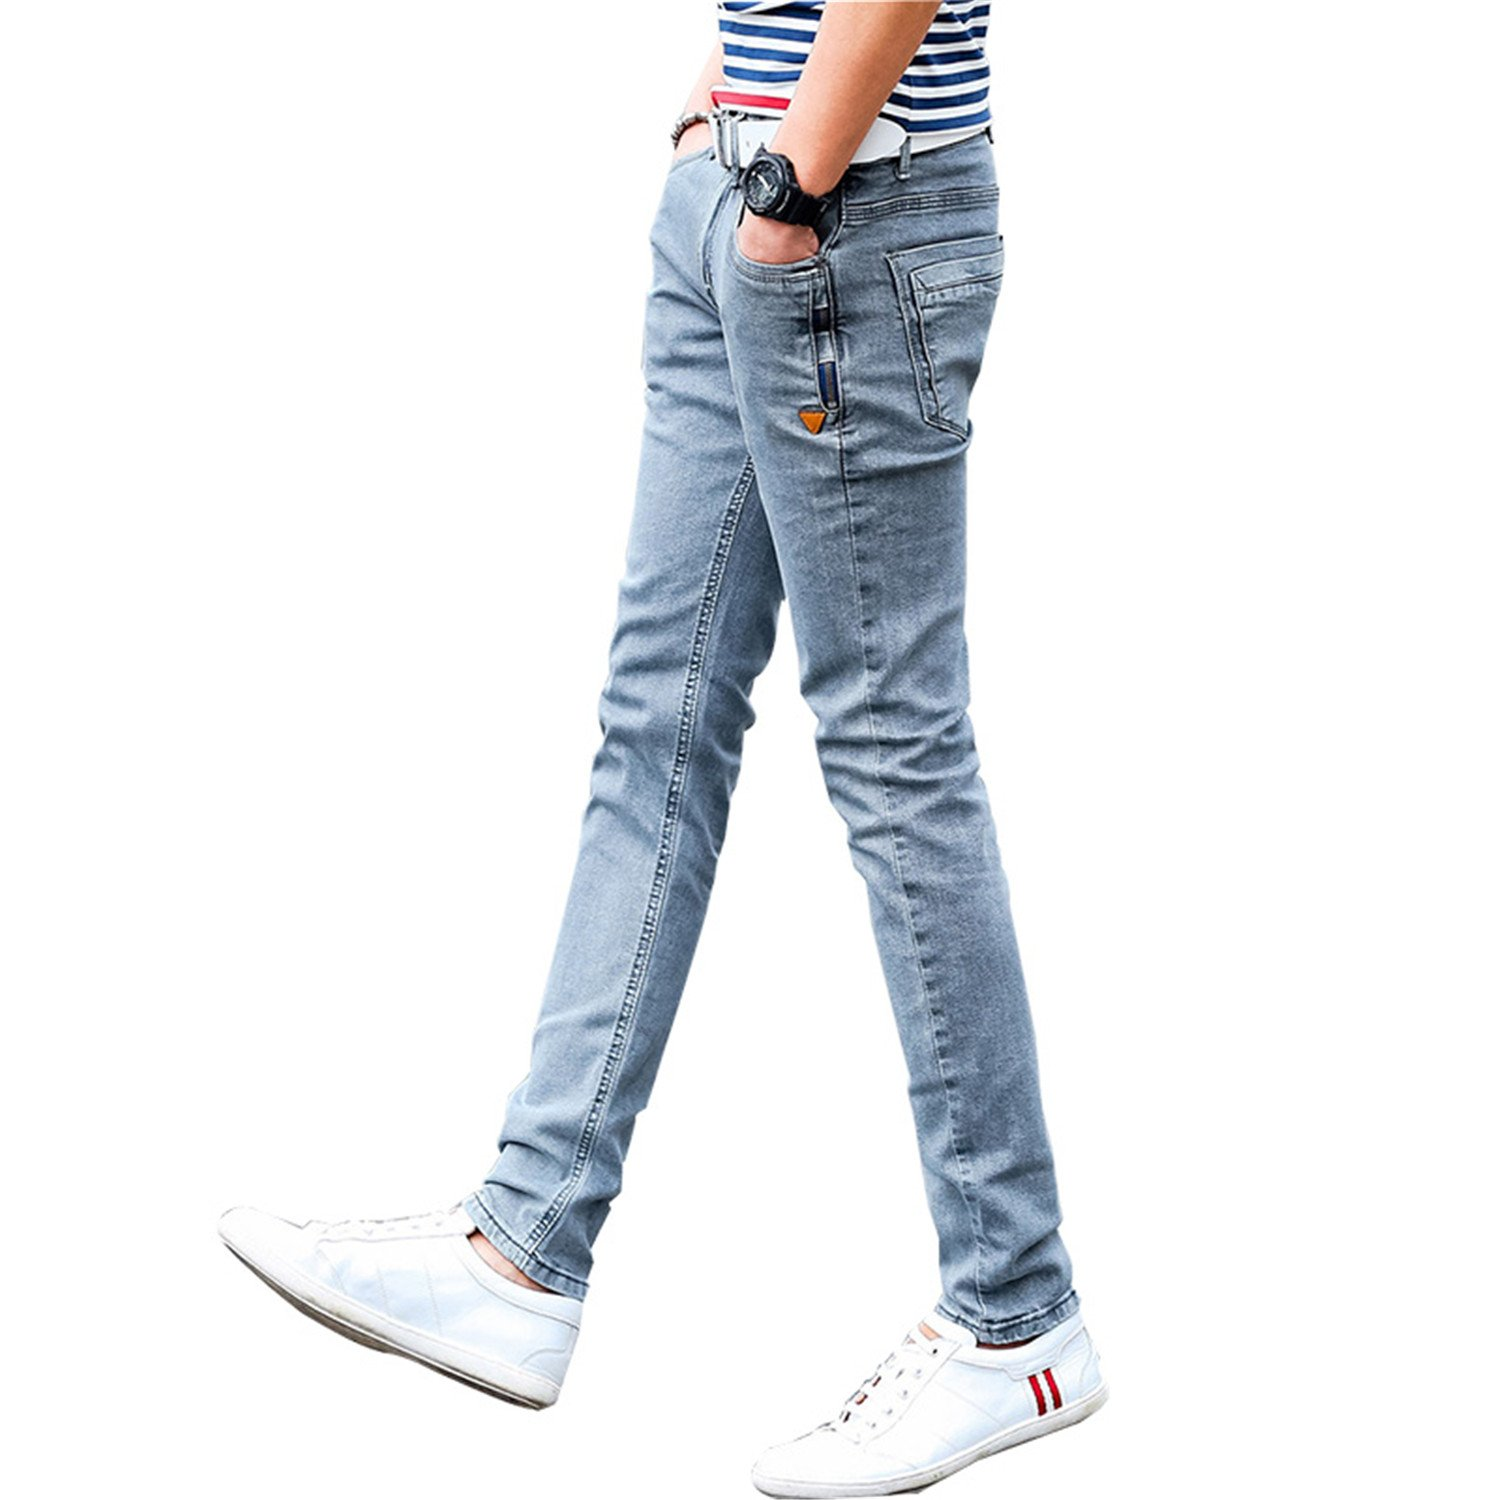 161daca9d4b Nerefy New Korean Style Men Jeans Grey Skinny Jeans Fashion Casual ...